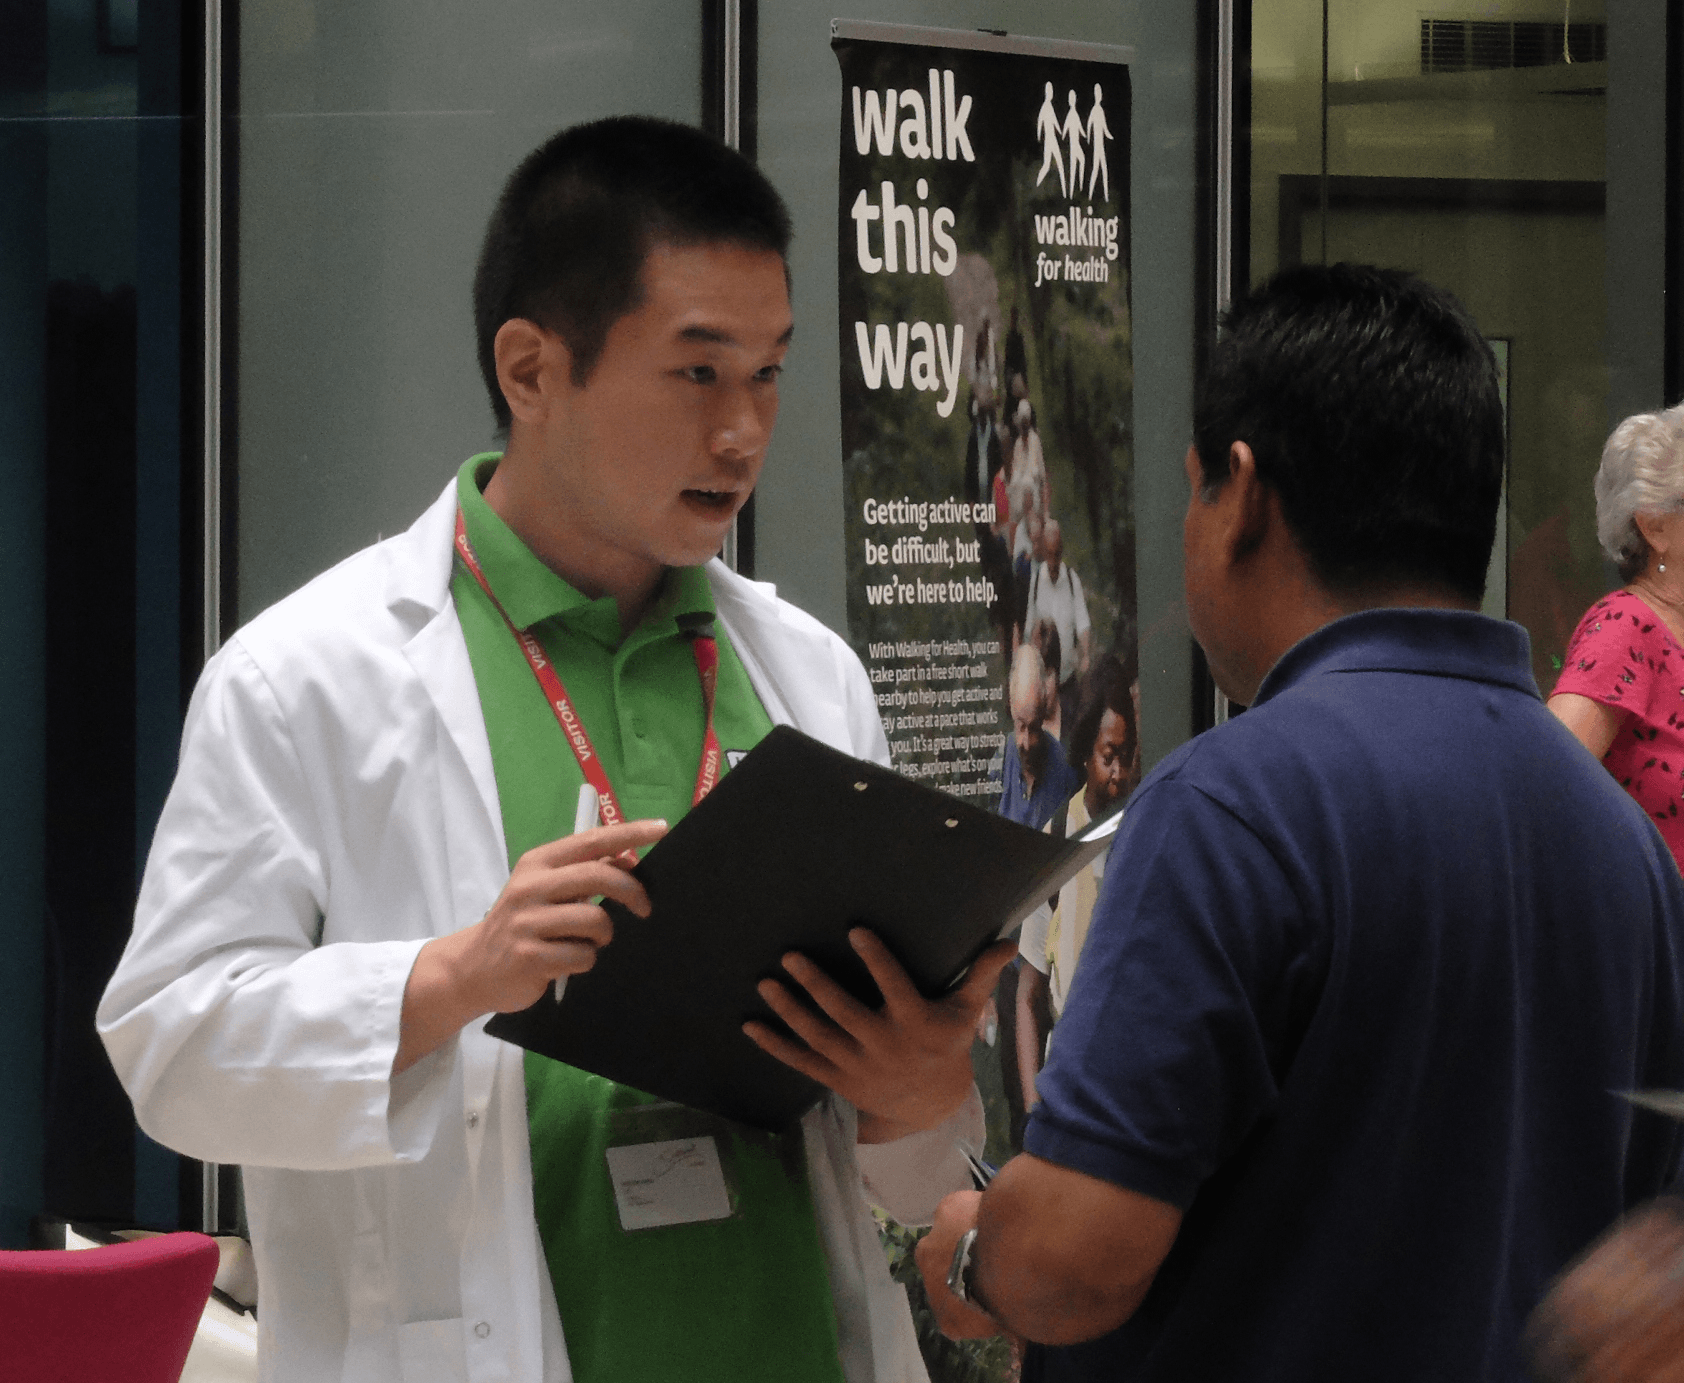 Walk doctor talking with clipboard